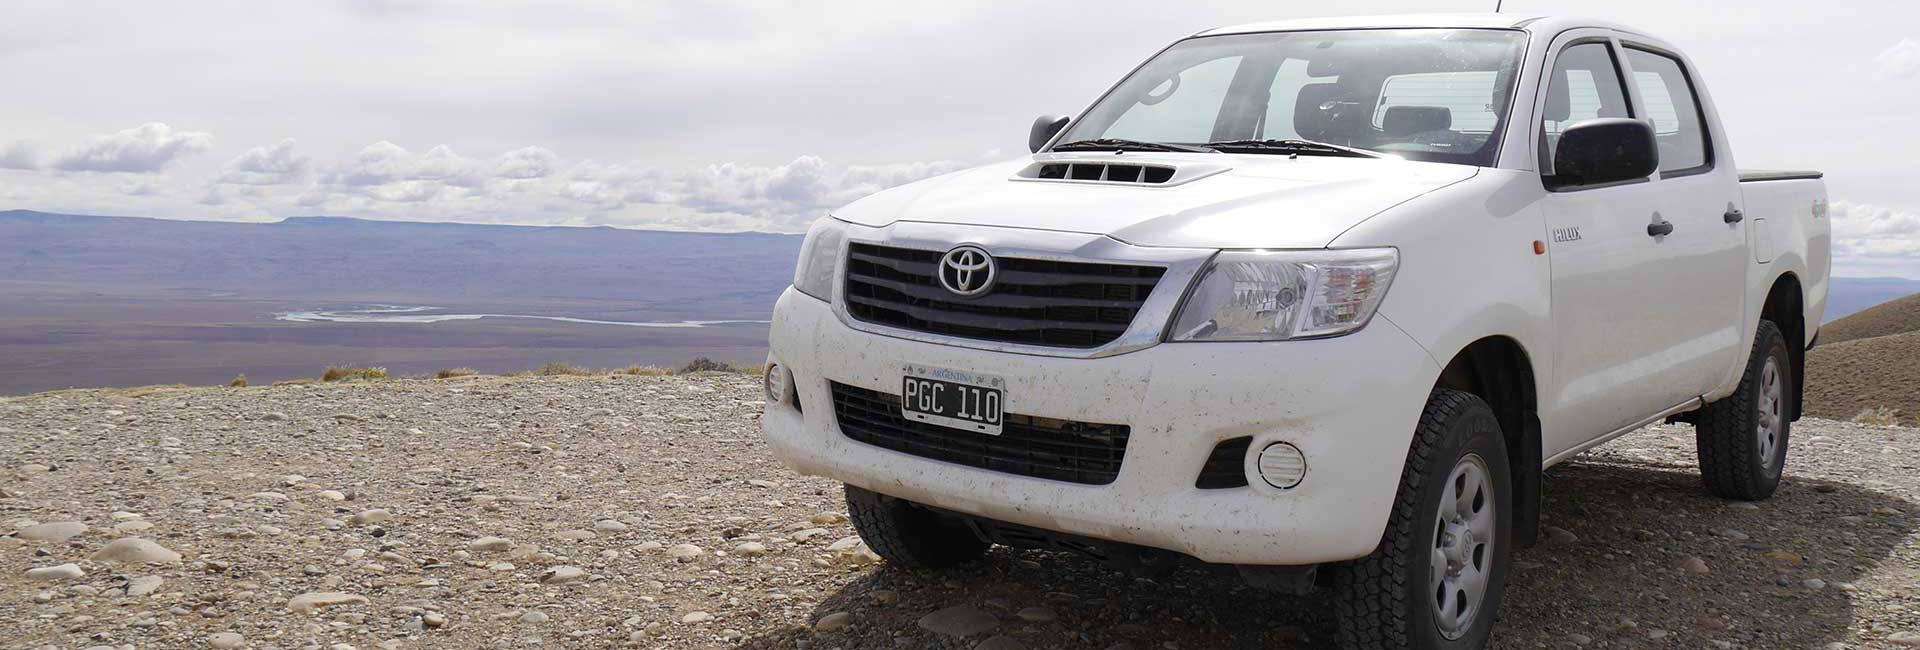 Hilux in Patagonia